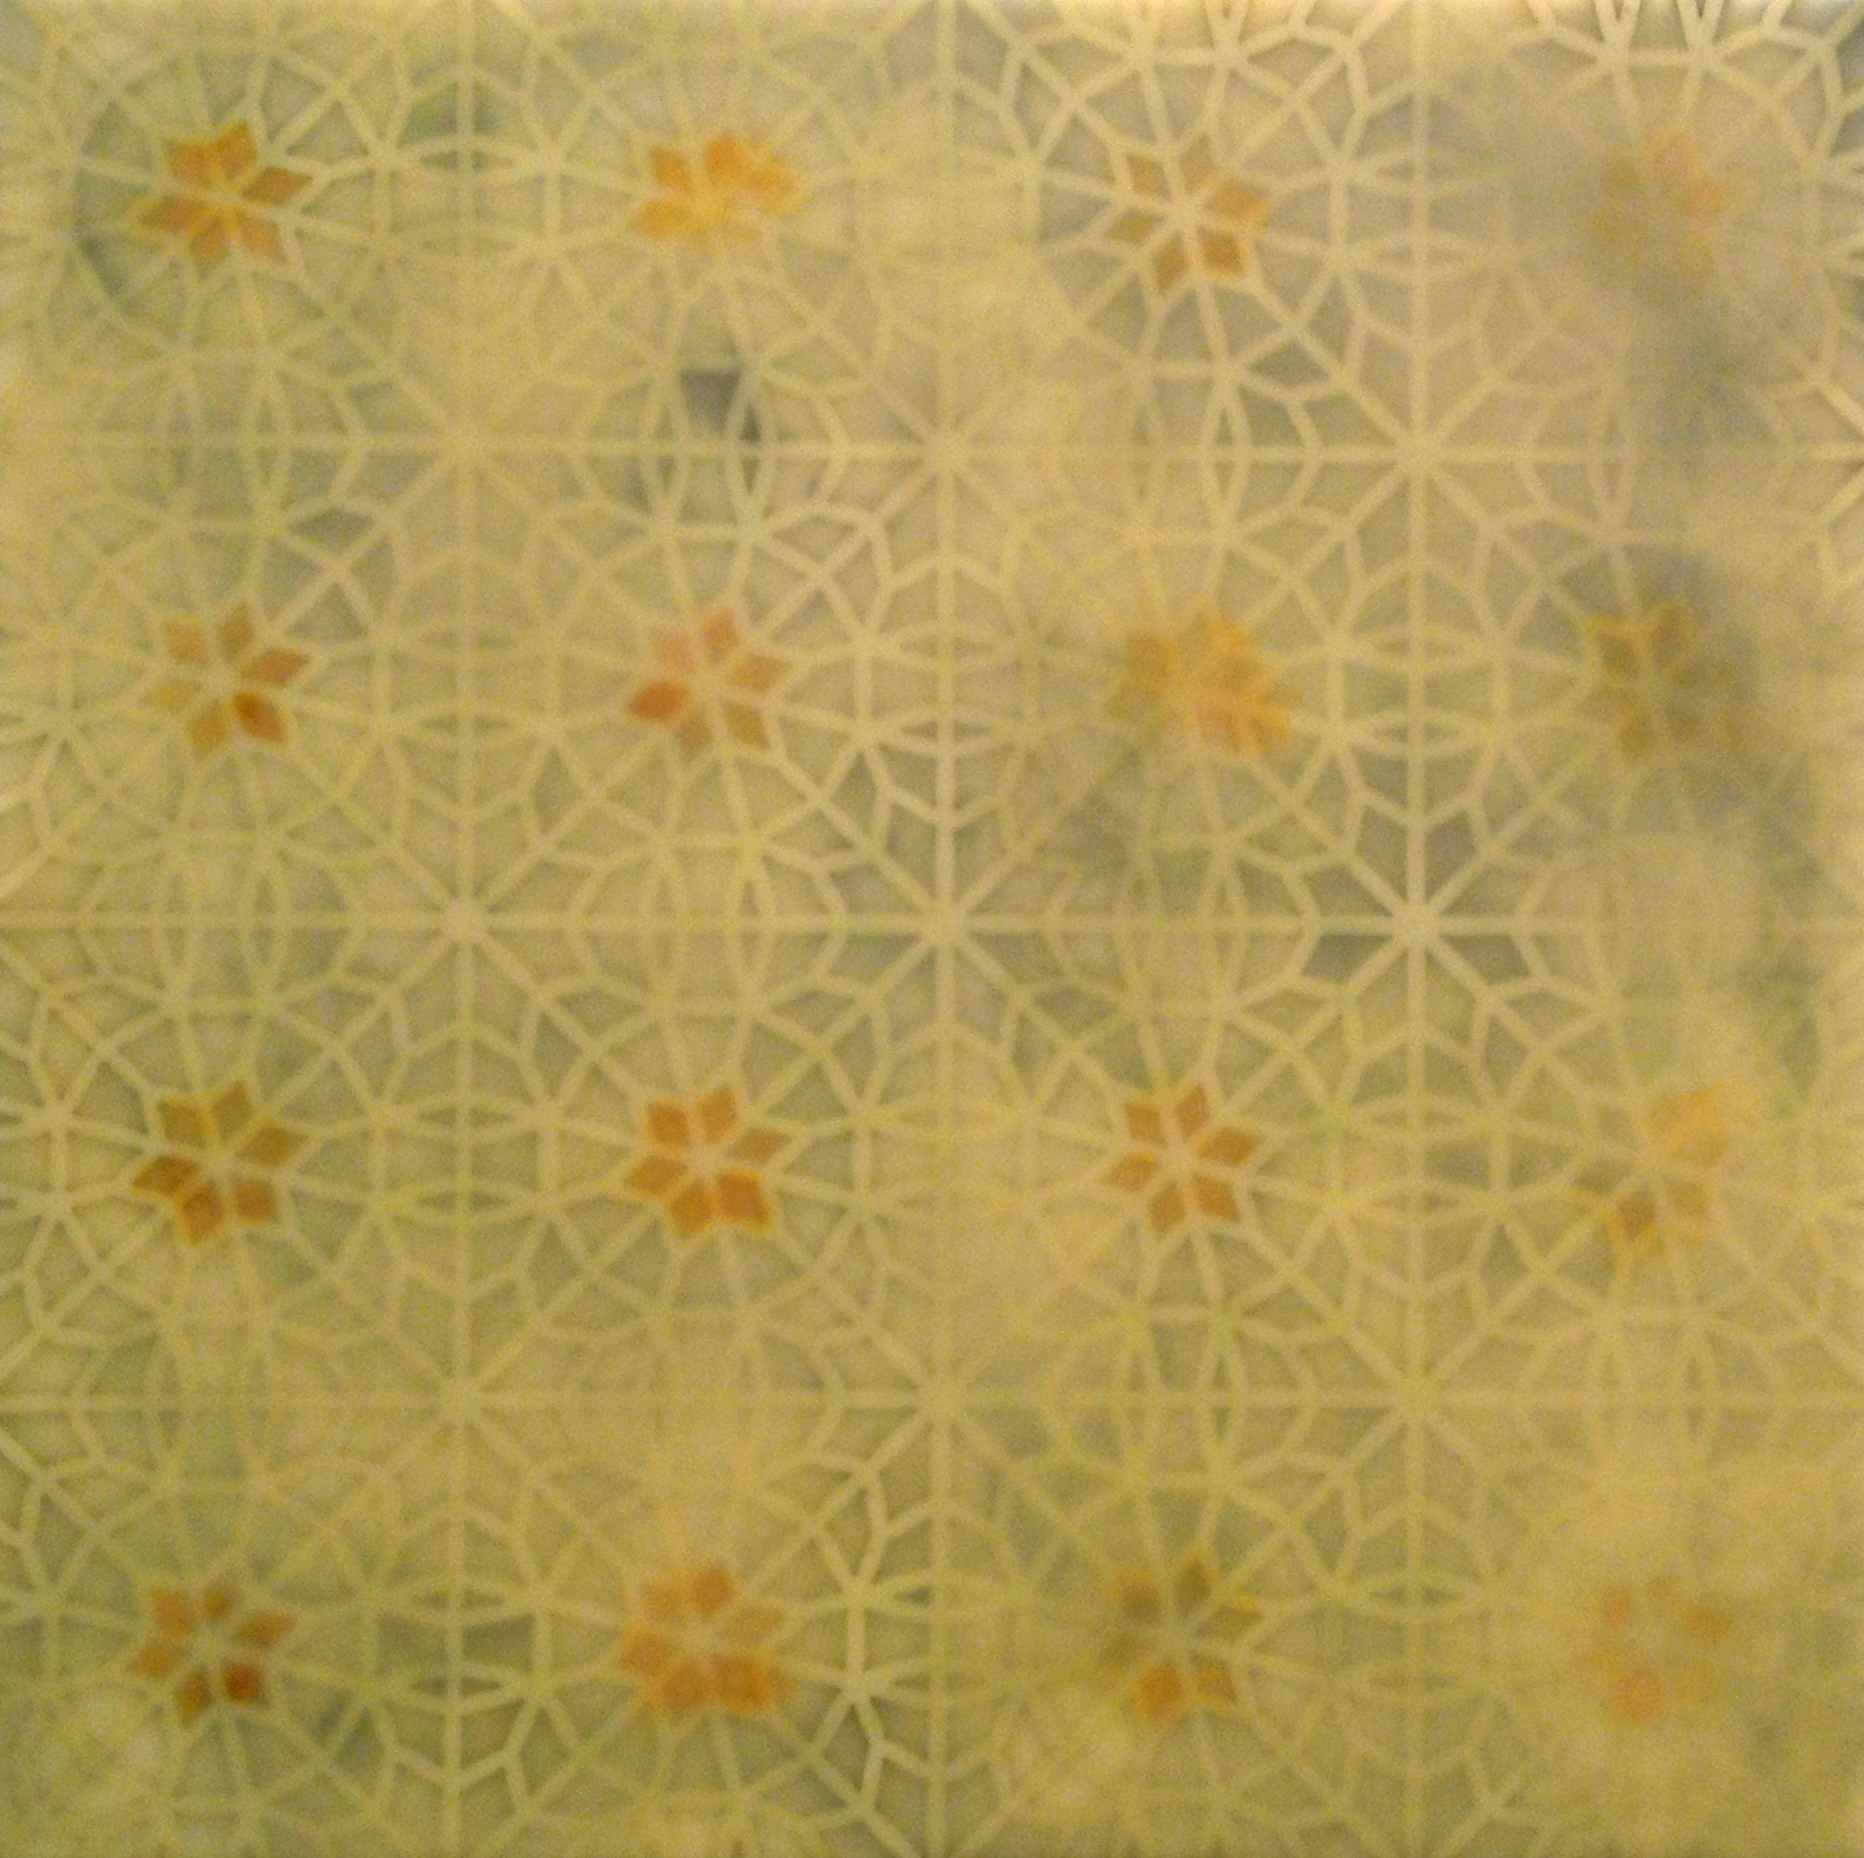 "Intersections: Yellow   Encaustic and cut paper  12"" x 12"" x 2""  2014"